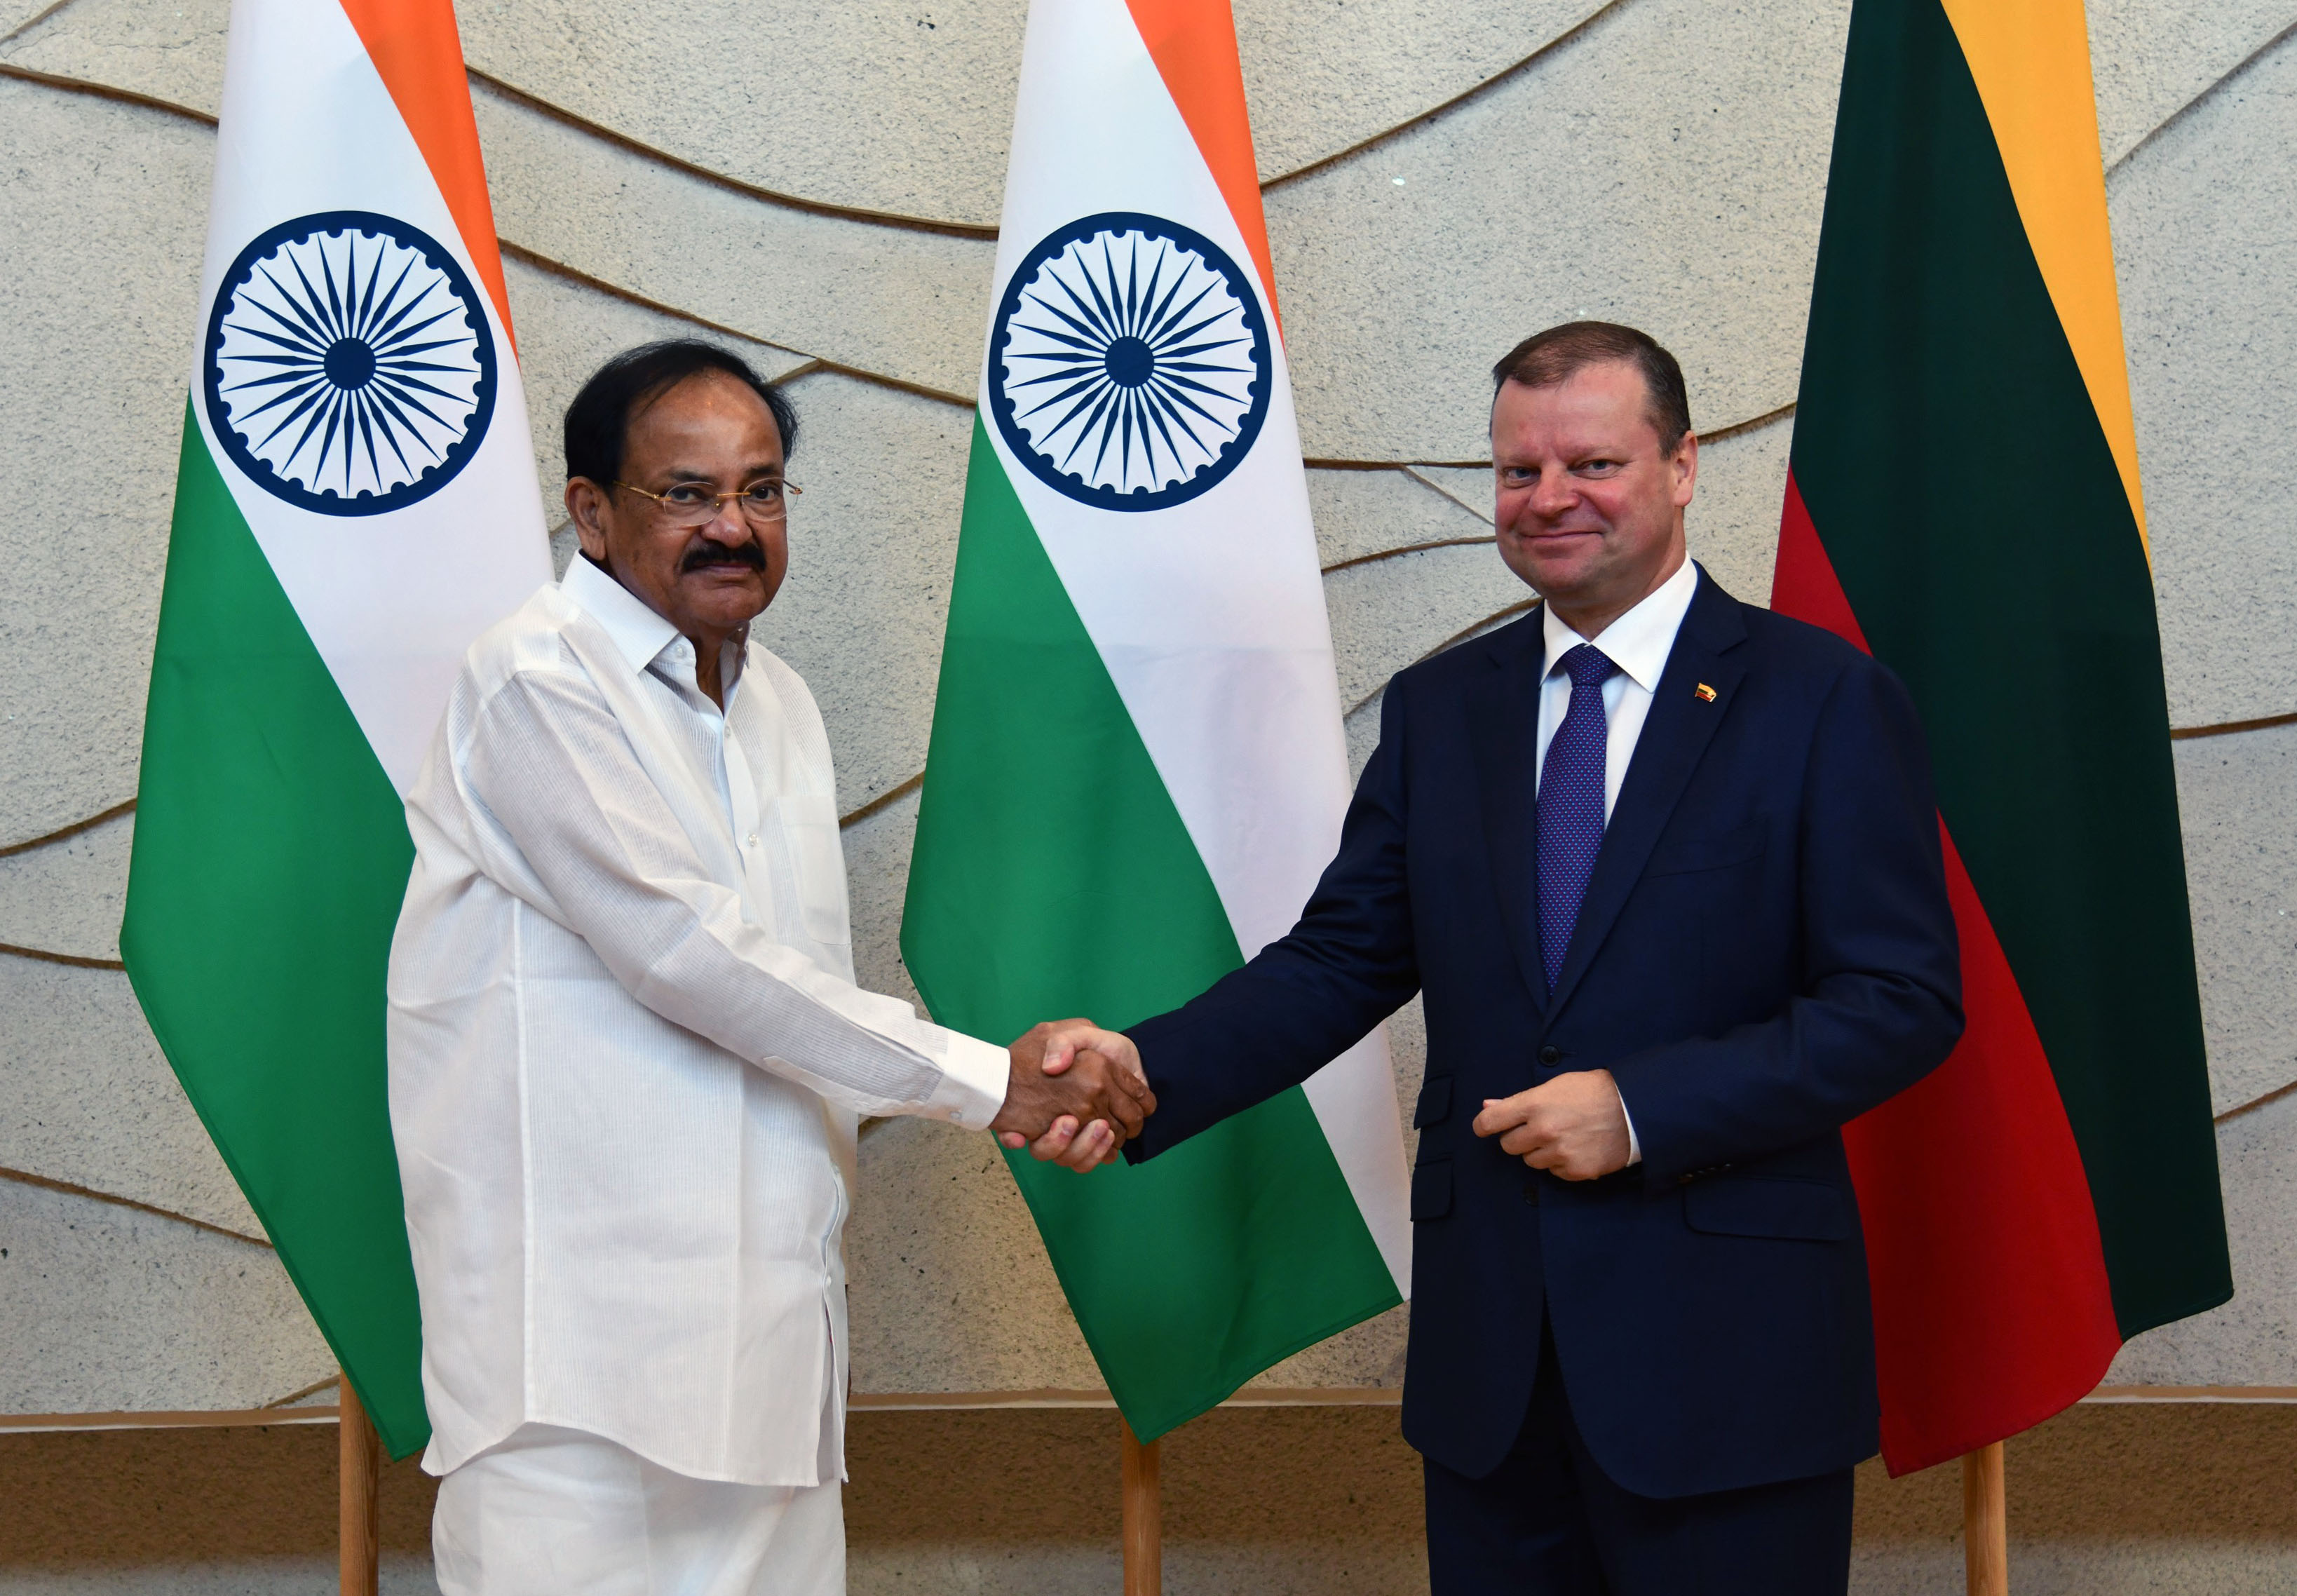 The Vice President, Shri M. Venkaiah Naidu at the meeting with the Prime Minister of the Republic of Lithuania, Mr. Saulius Skvernelis in Vilnius, Lithuania on August 19, 2019.